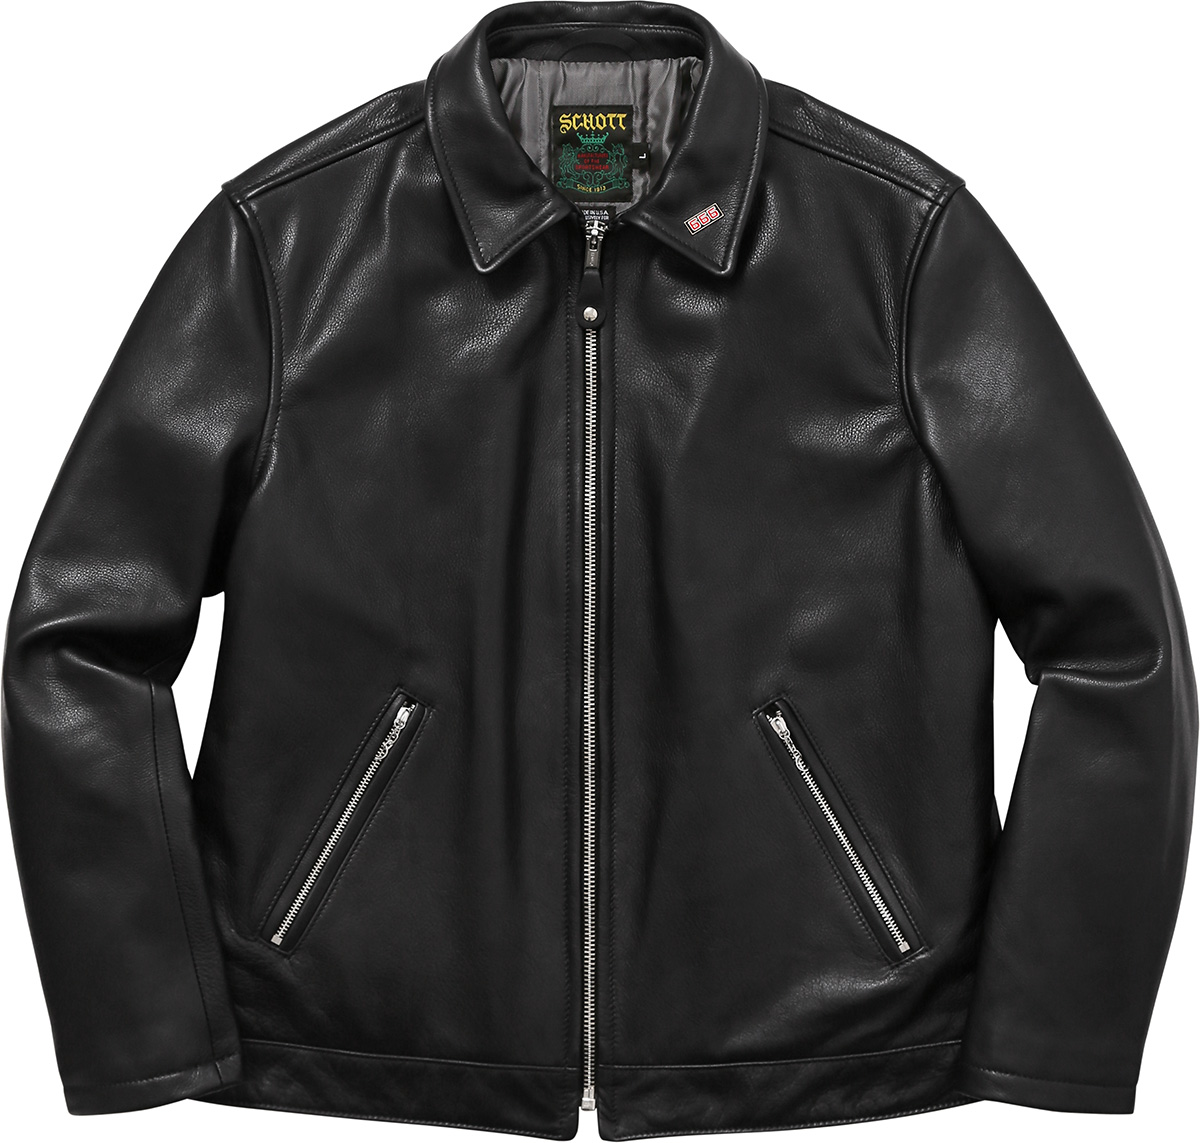 Supreme Supreme®/Schott® Leather Work Jacket